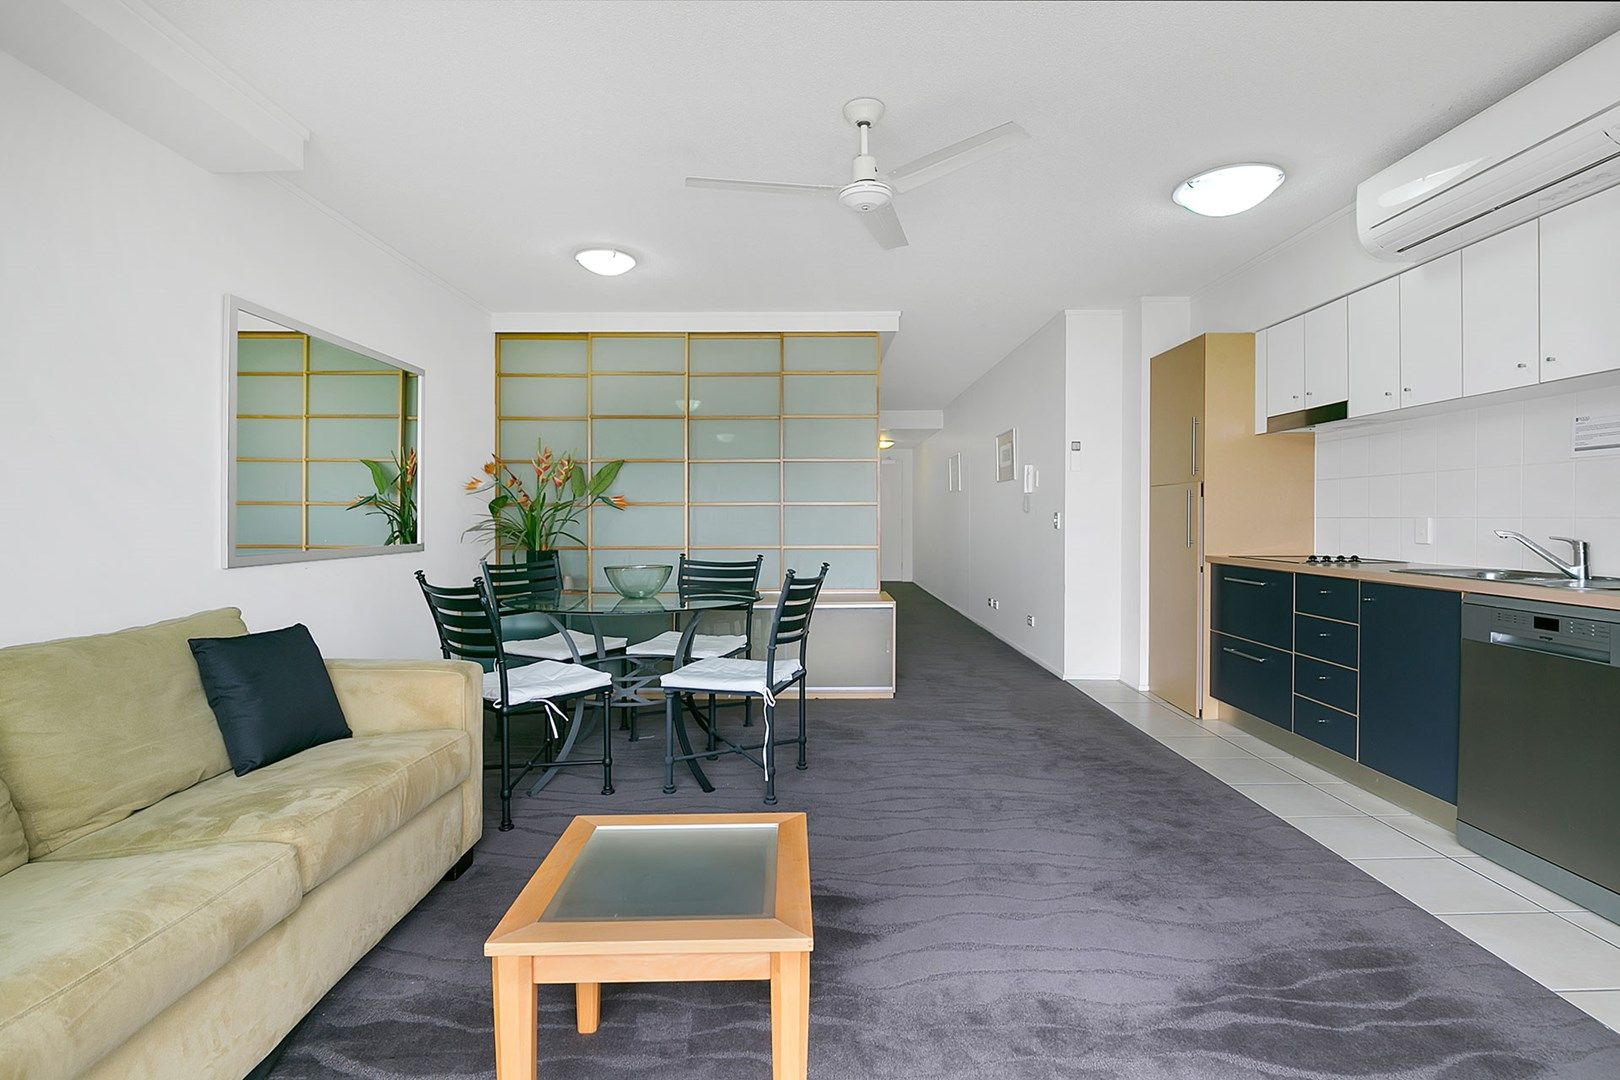 63/15 Goodwin Street, Kangaroo Point QLD 4169, Image 0